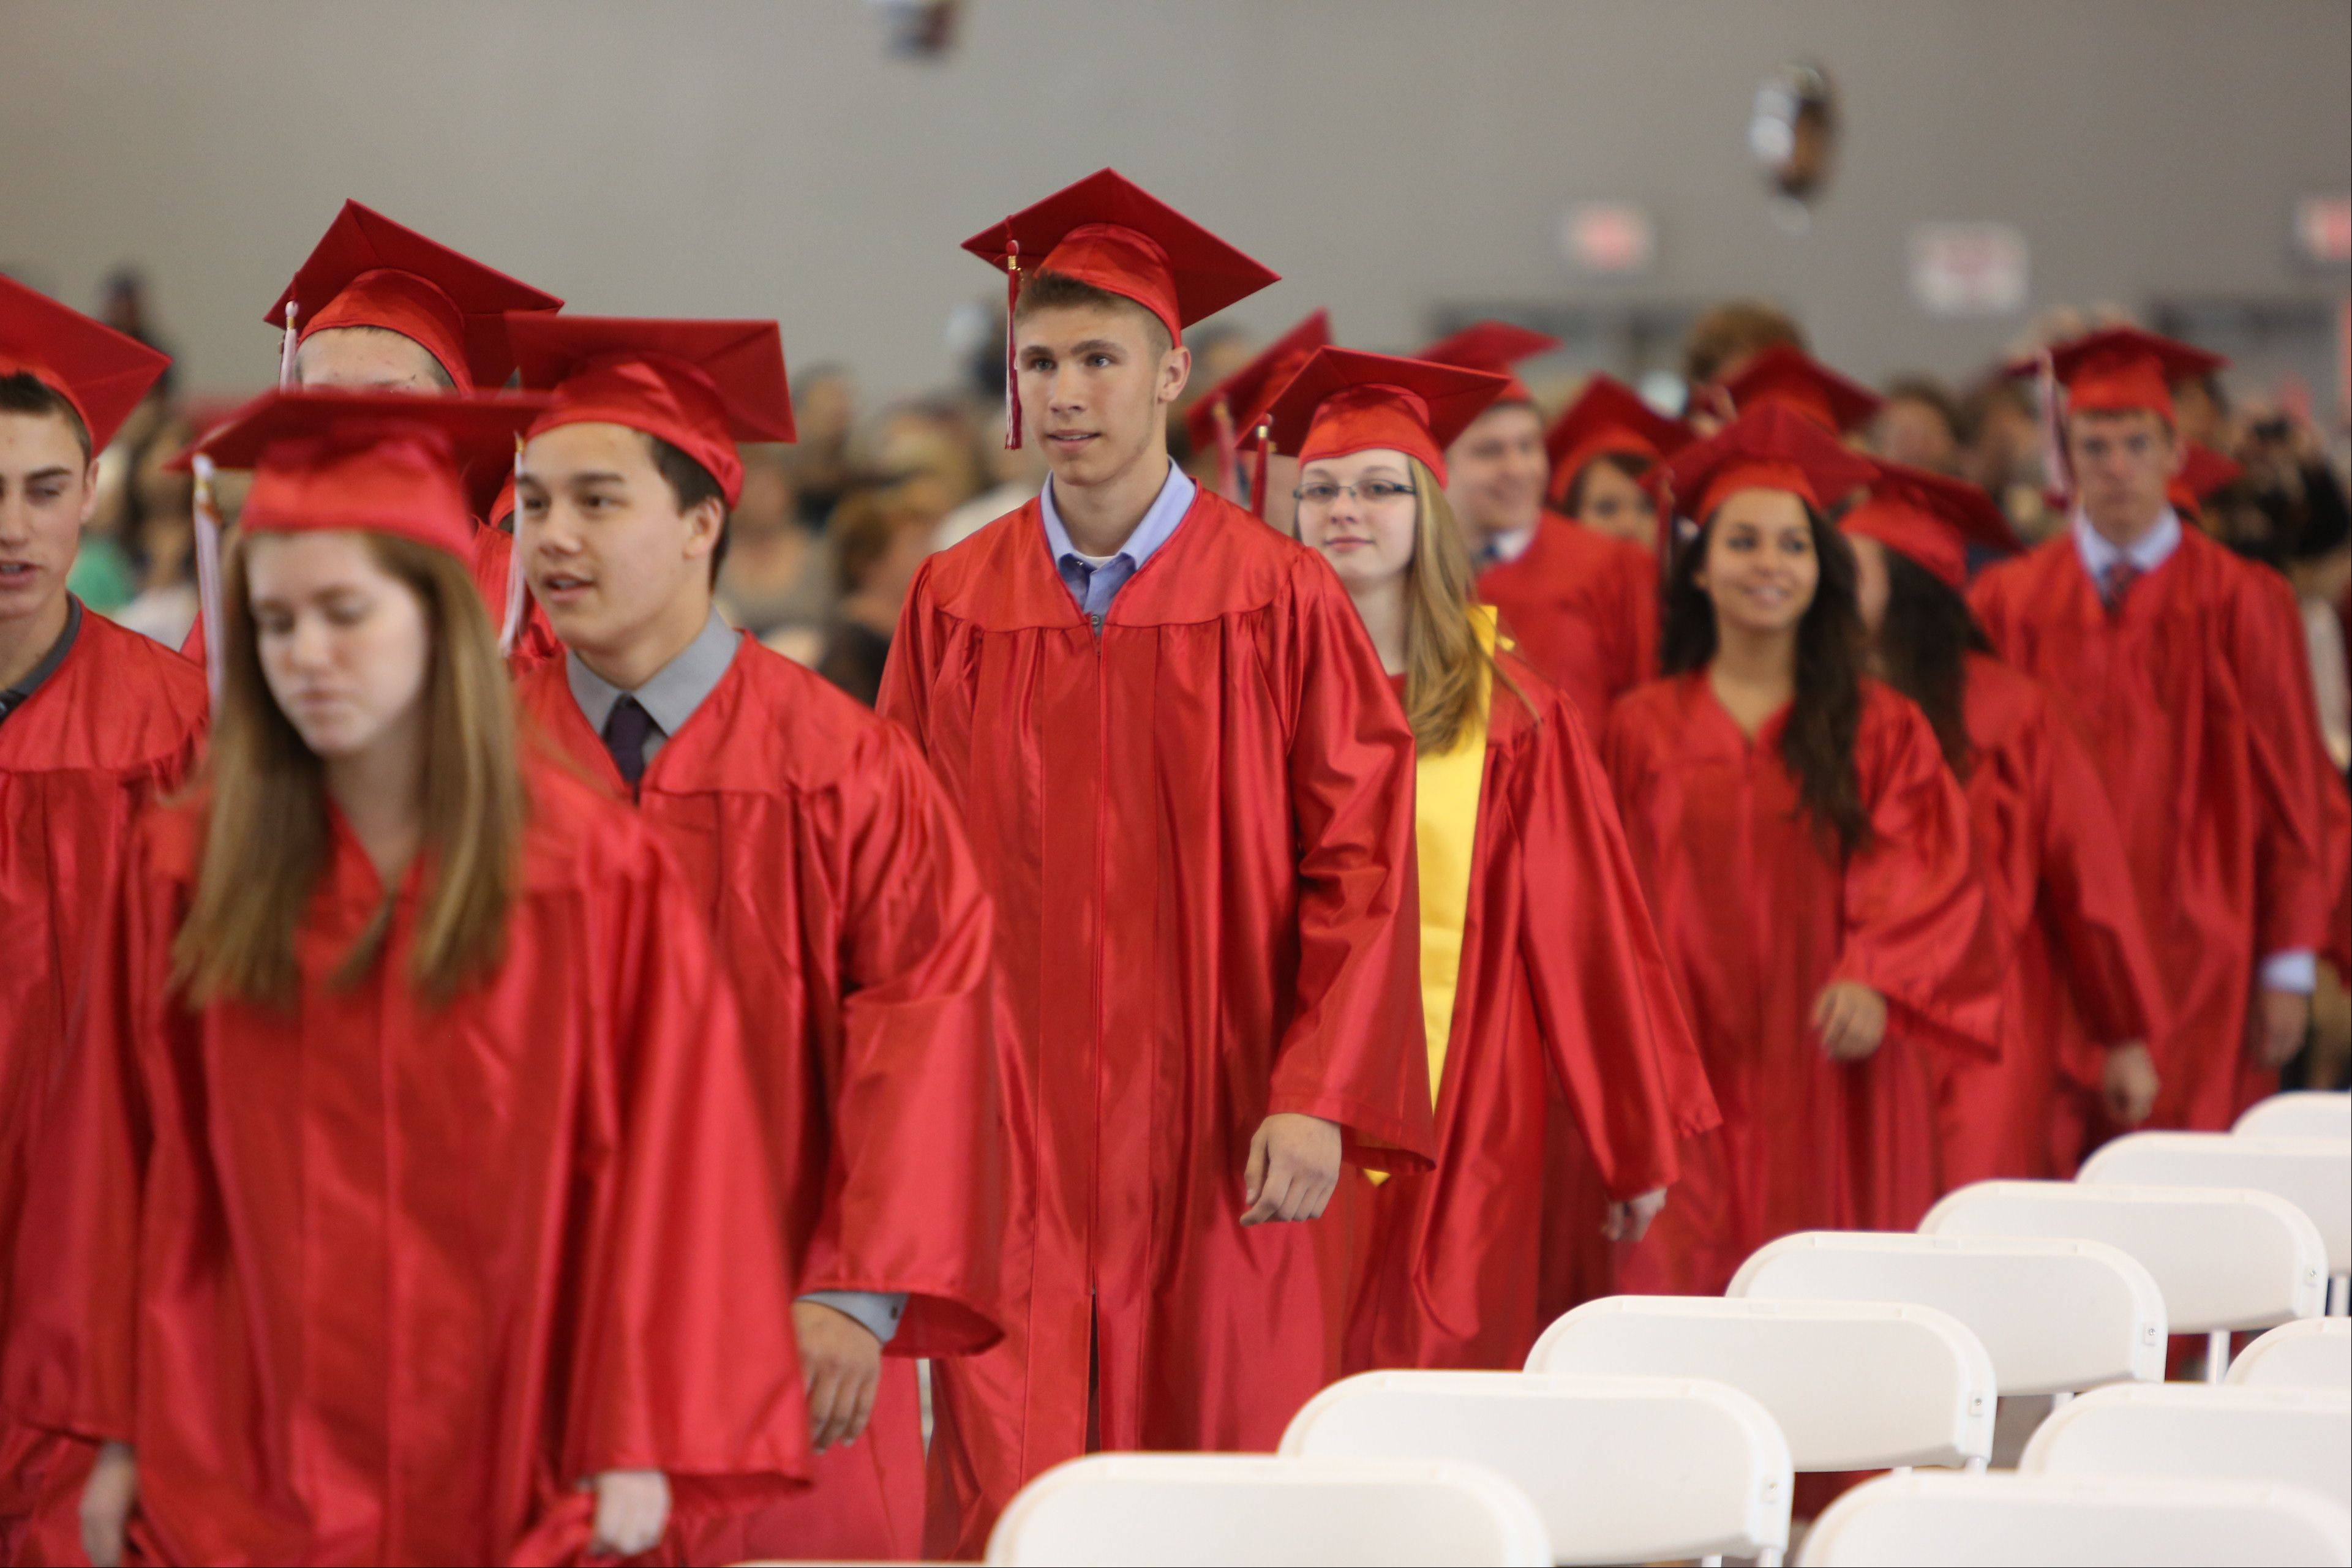 Images from the Grant Community High School graduation on Sunday, May 26 in Fox Lake.